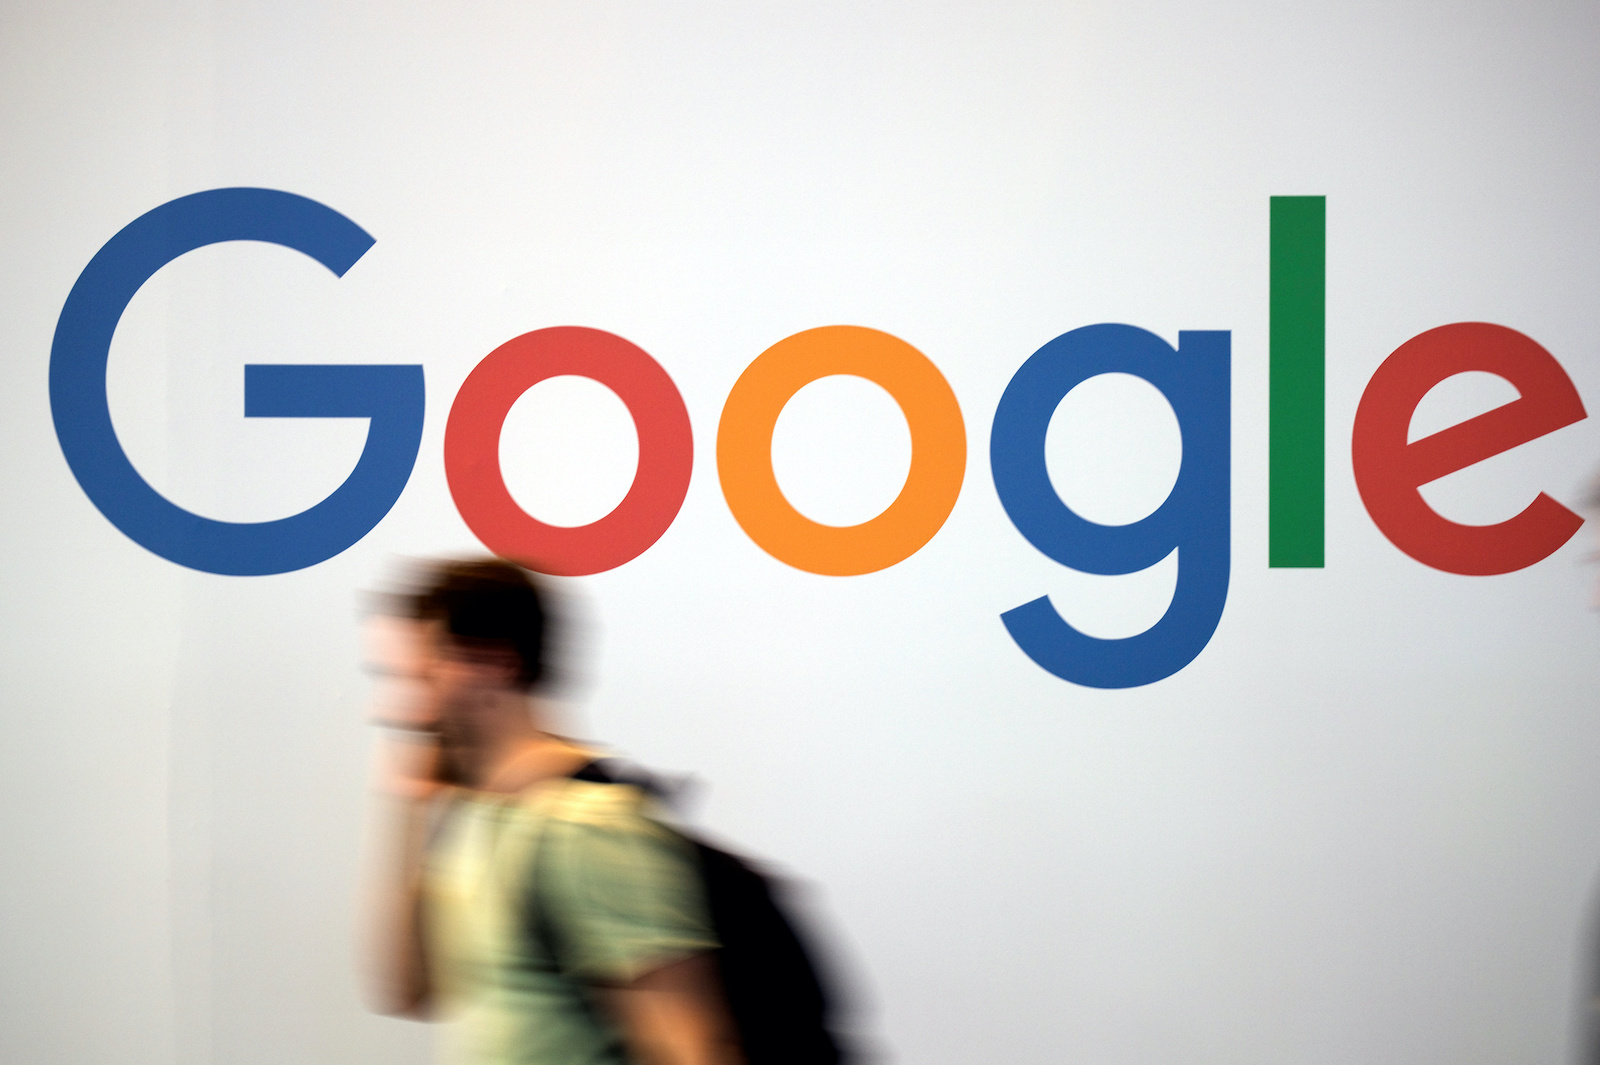 The logo of Google is pictured during the Viva Tech start-up and technology summit in Paris, France, May 25, 2018. REUTERS/Charles Platiau - RC11E2542460